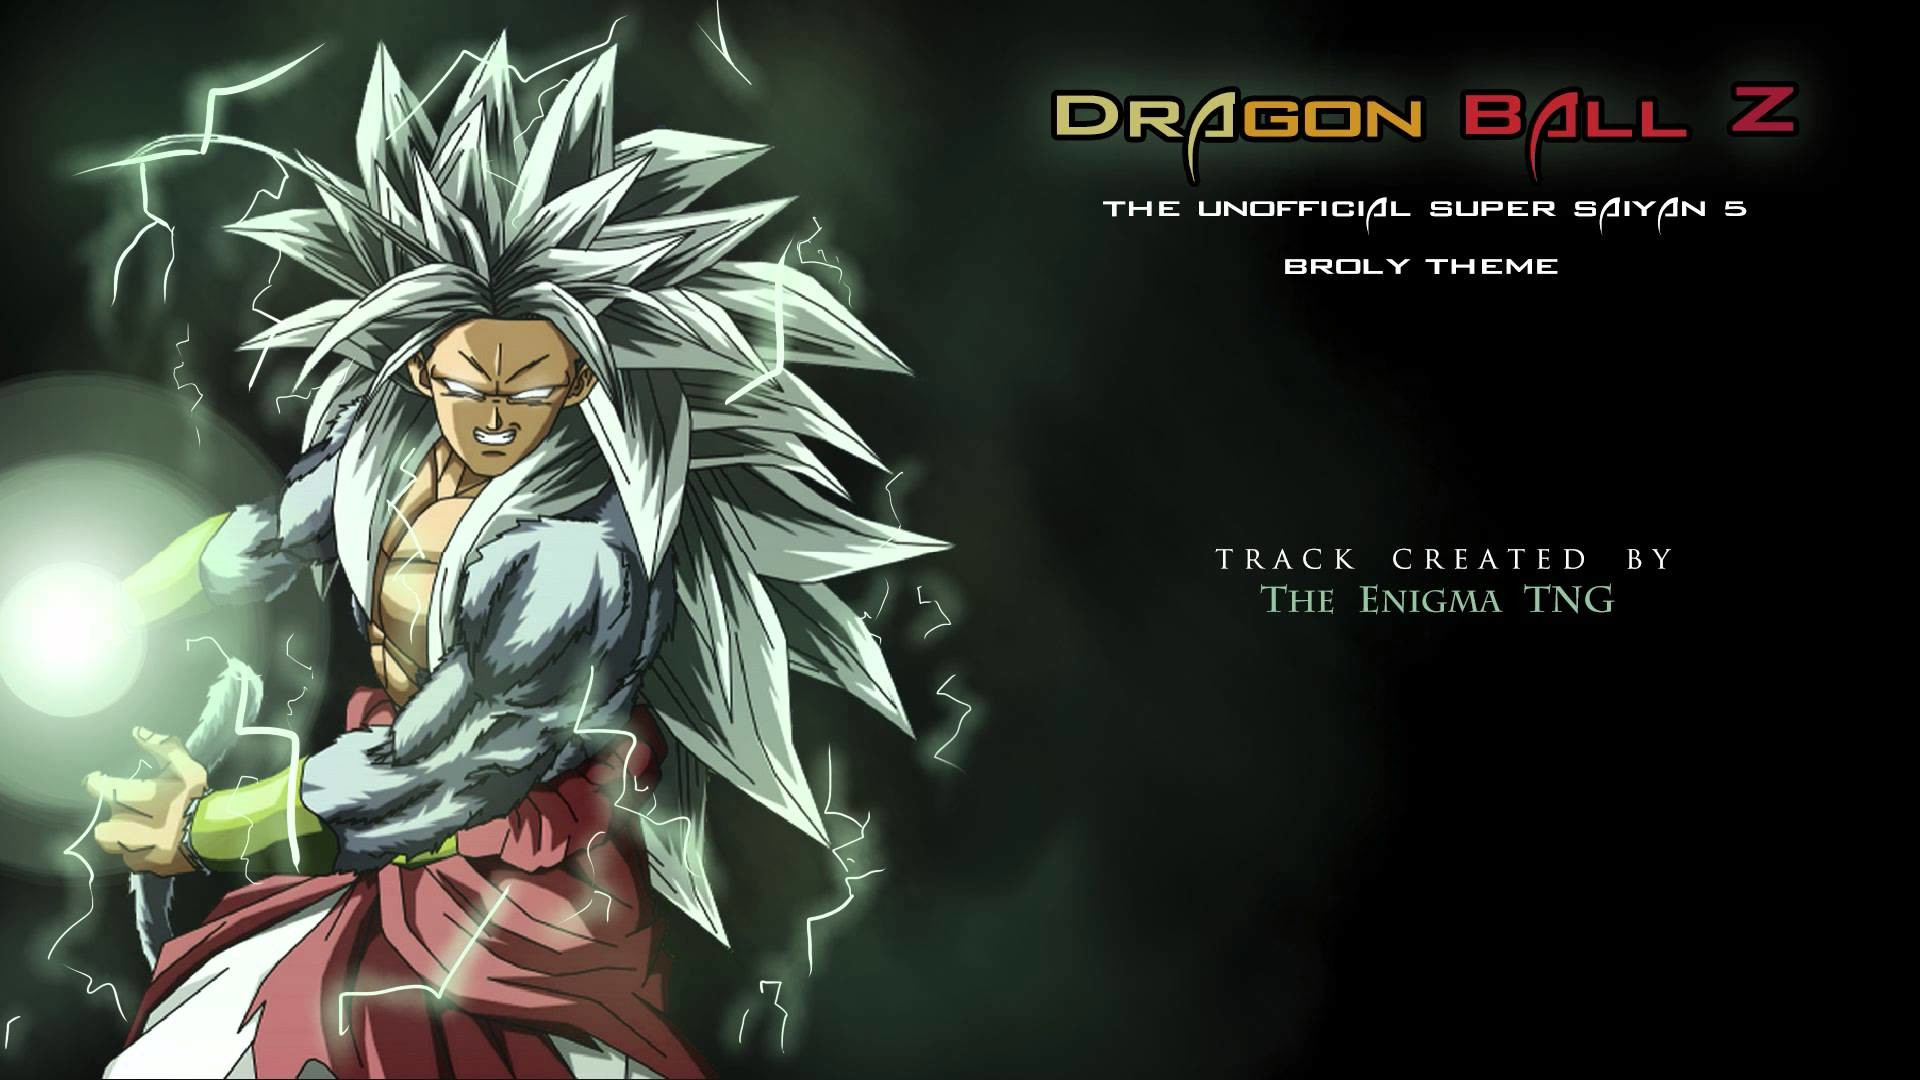 Dragon Ball Z – Unofficial Super Saiyan 5 Broly (The Enigma TNG) – YouTube